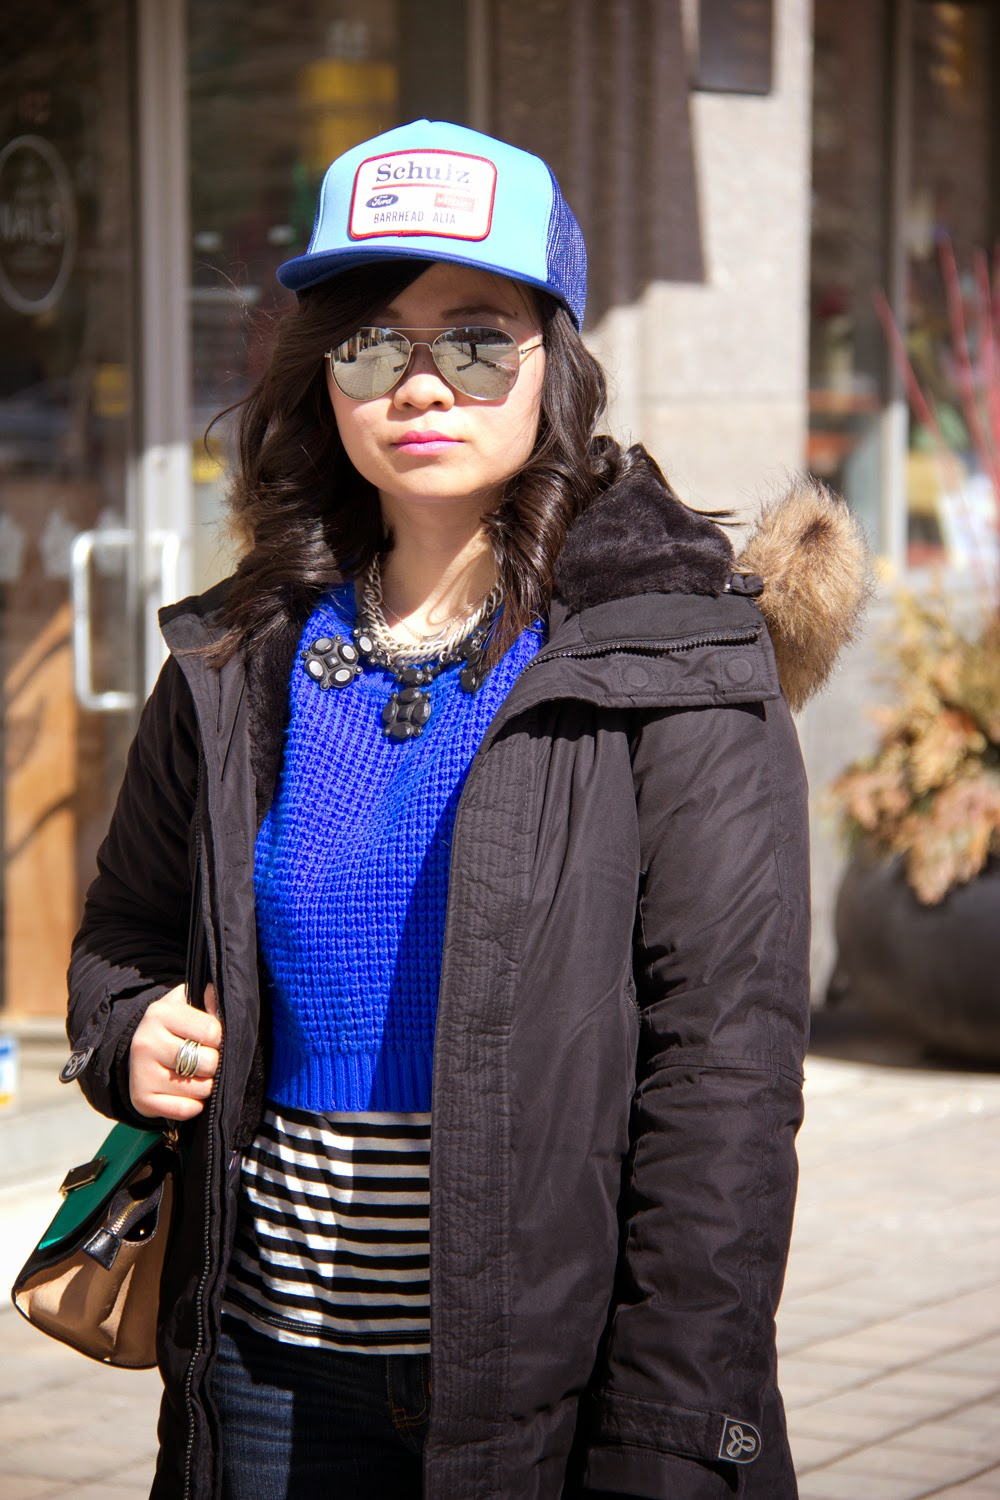 baseball-Cap, Street-Style, Neon-Blue-Crop-Top-Knit-Sweater, shades-sun-glasses